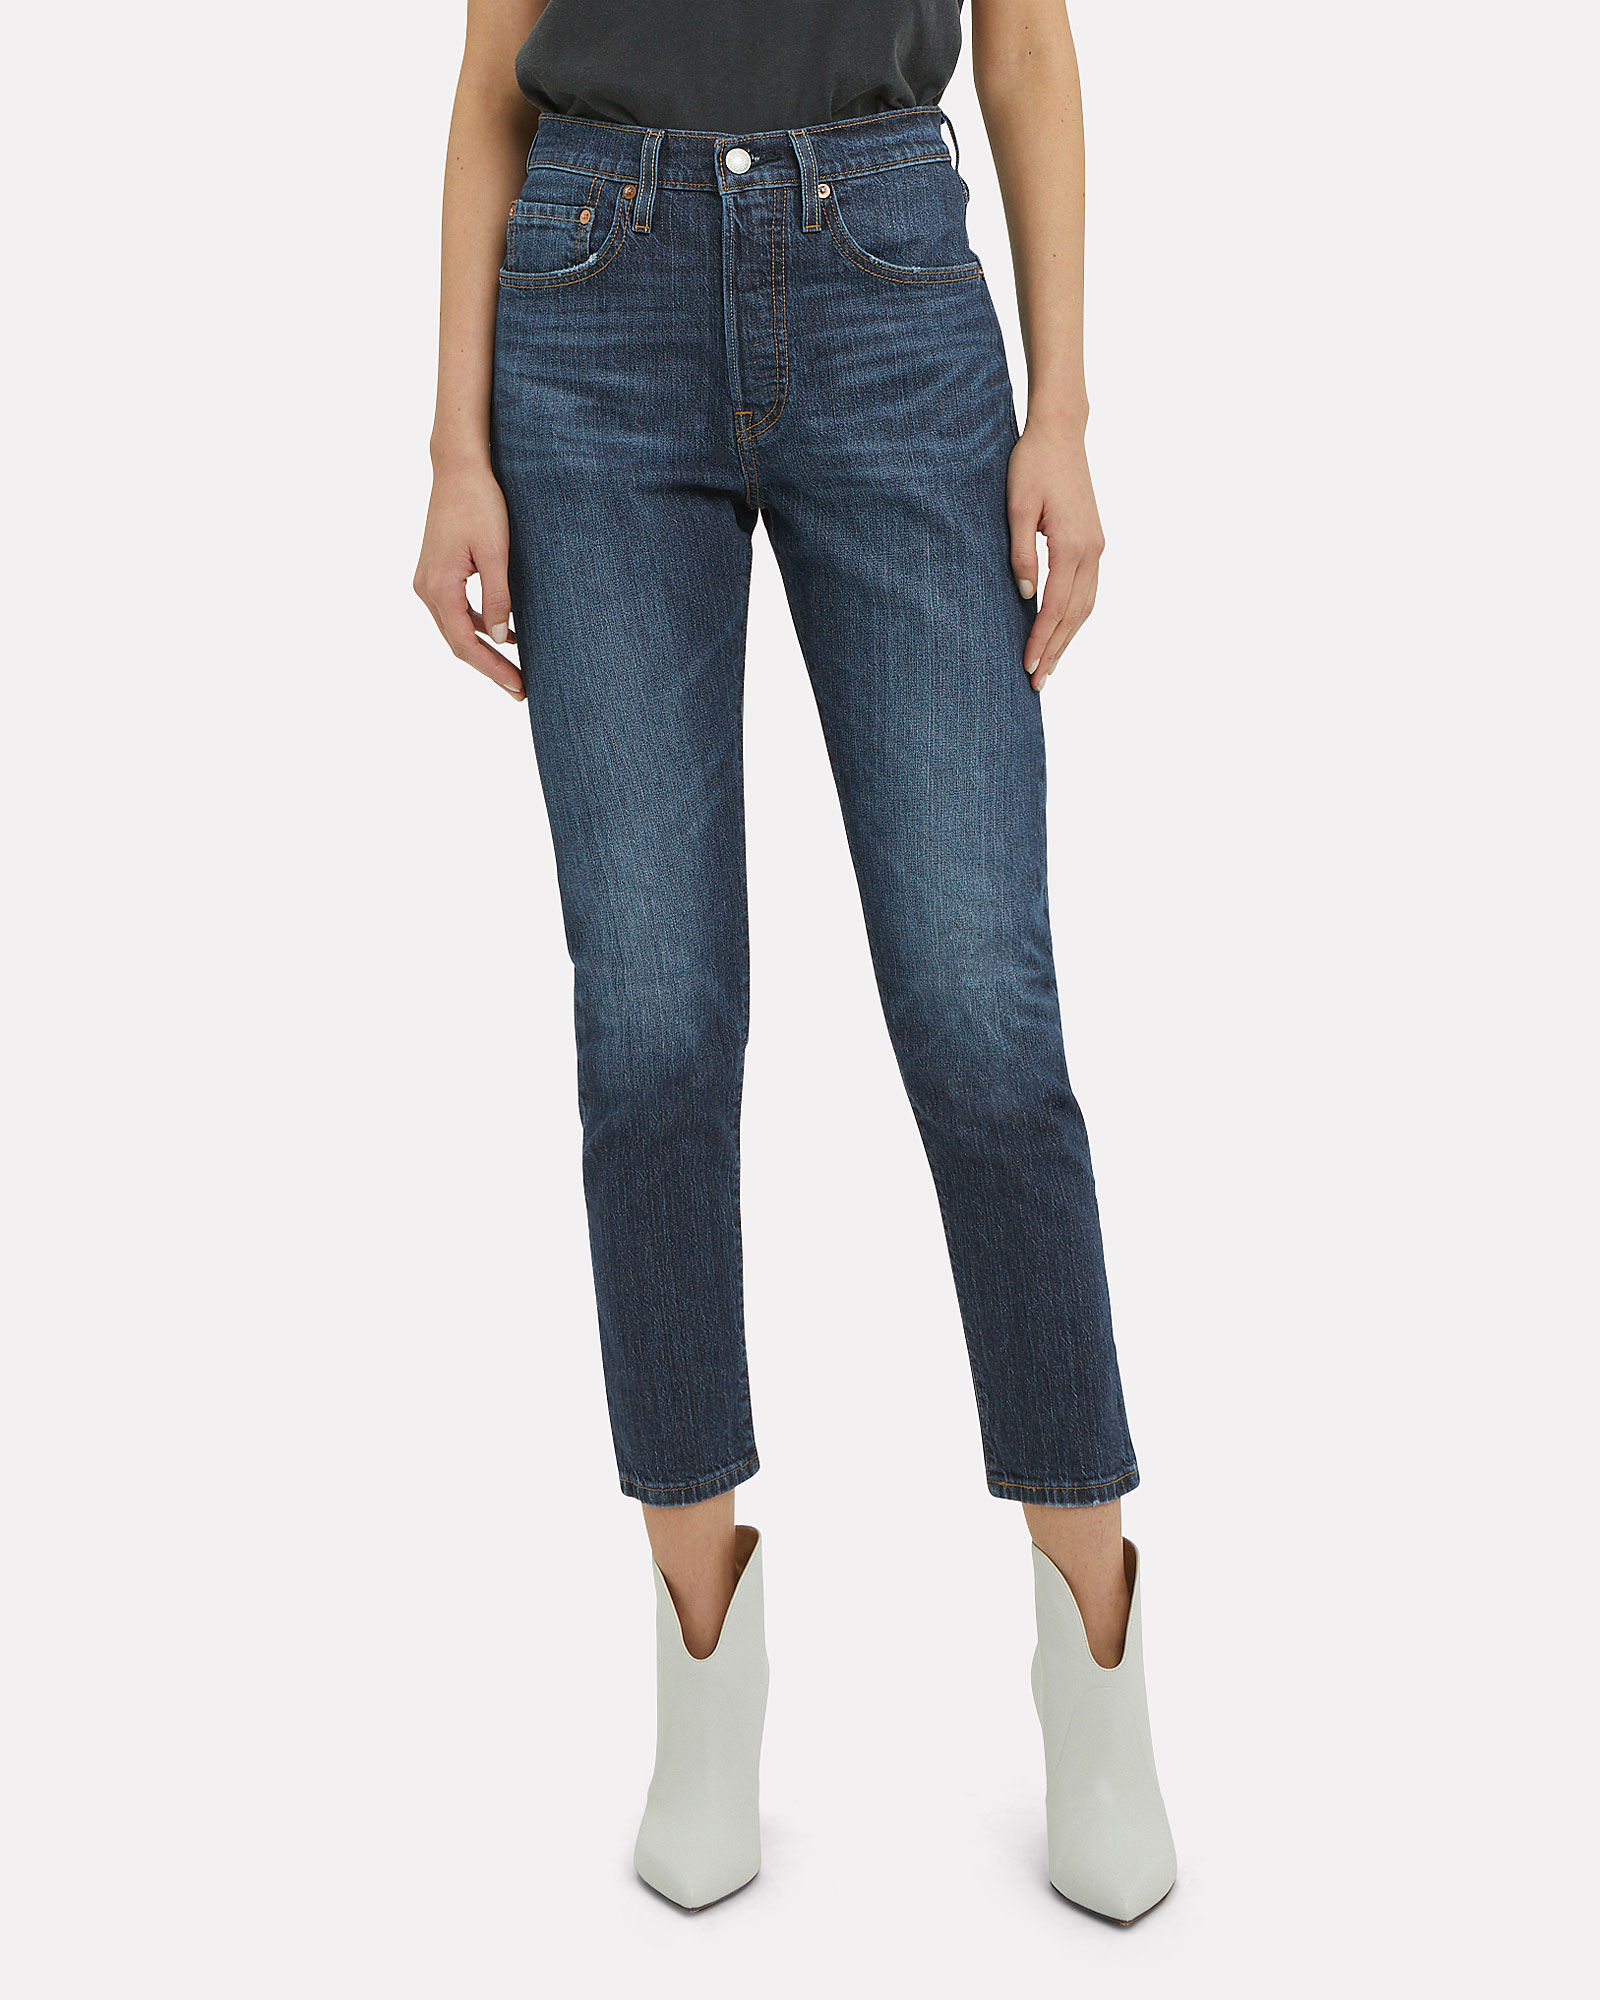 501 Skinny Jeans, DENIM, hi-res